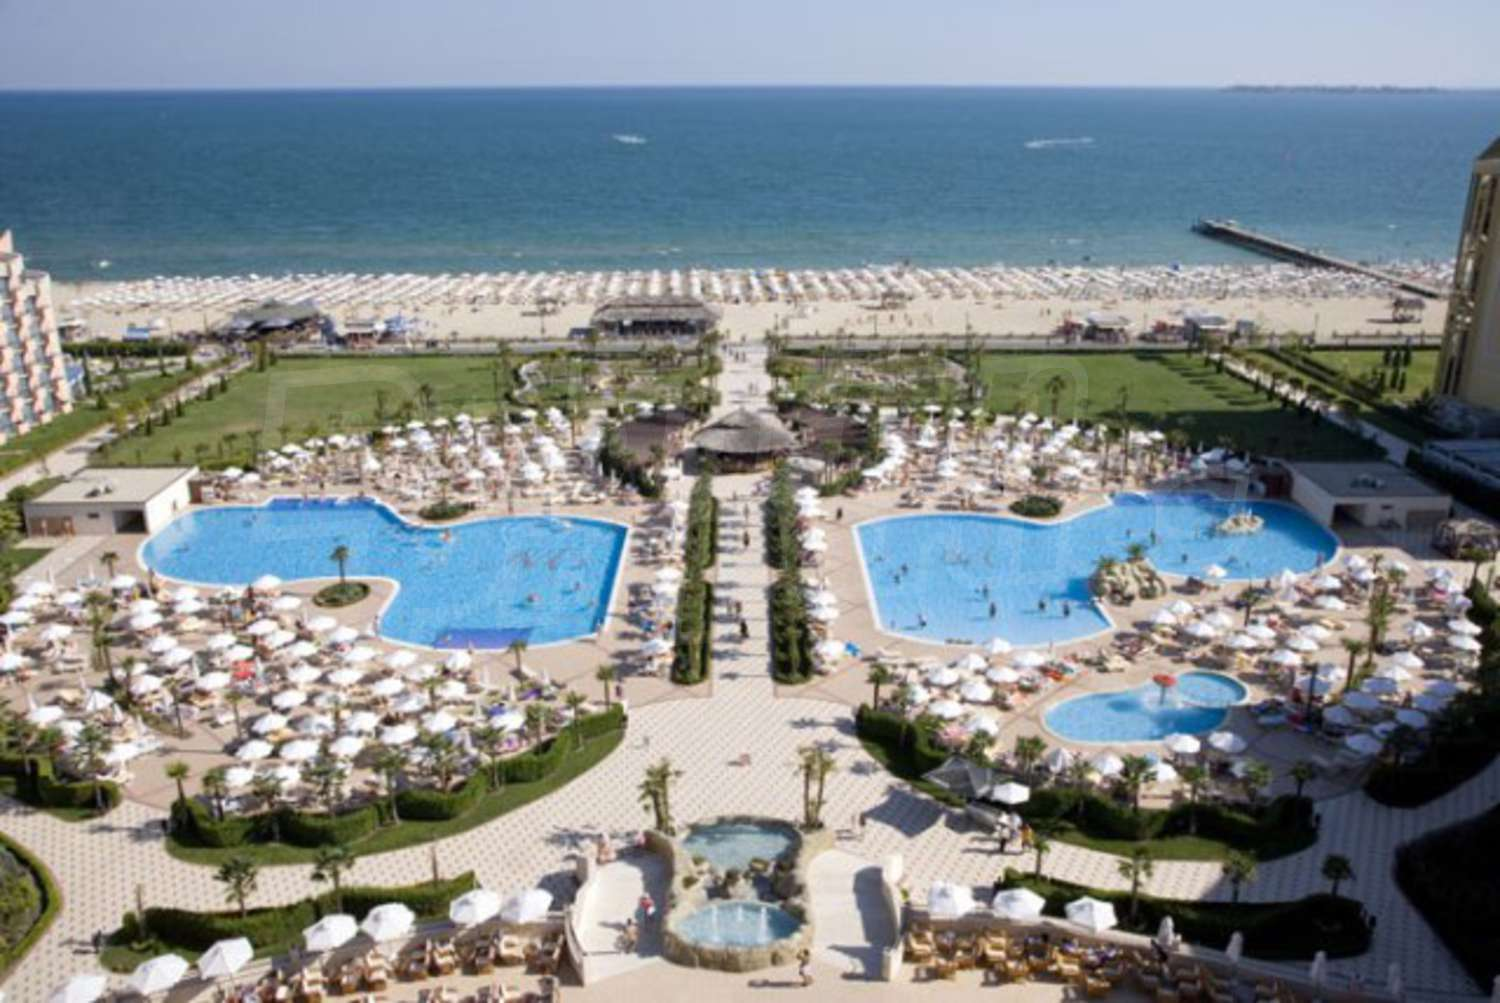 Apartment For In Majestic Hotel And Residence Sunny Beach Bulgaria Frontline 5 Star Bijou The Centre Of